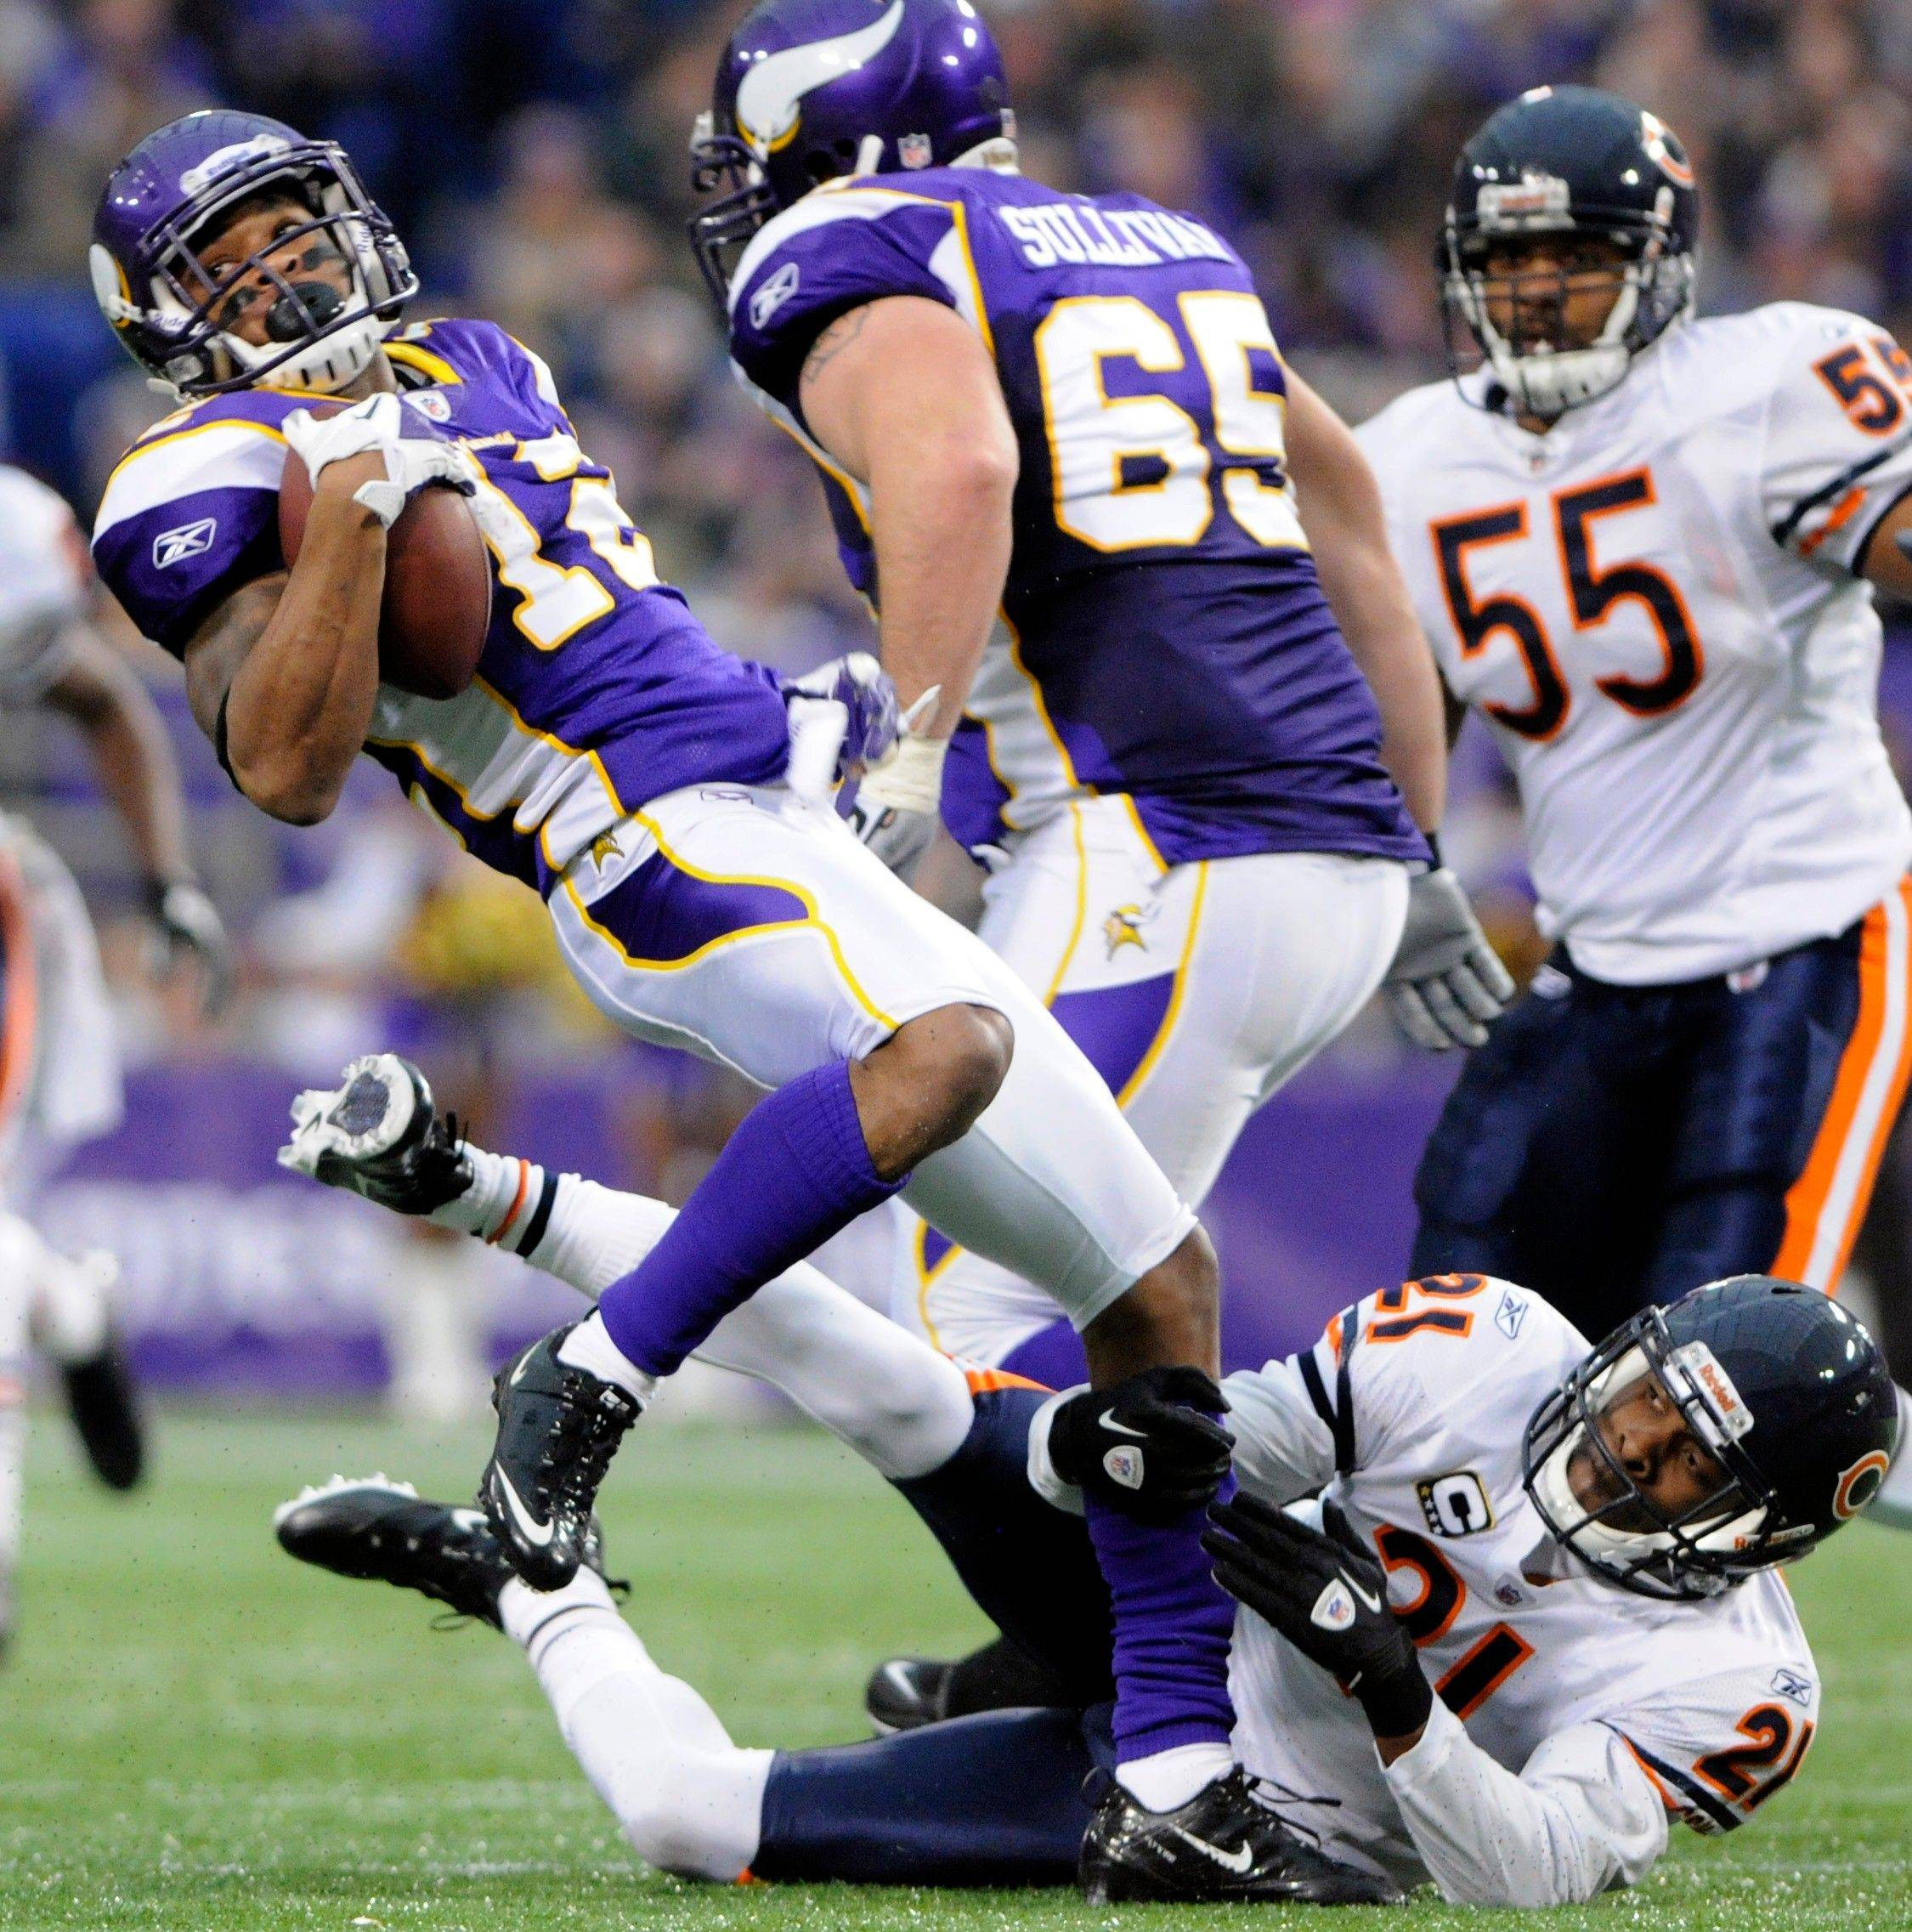 Minnesota Vikings wide receiver Percy Harvin gets tacked by Chicago Bears defensive back Corey Graham in the first half.